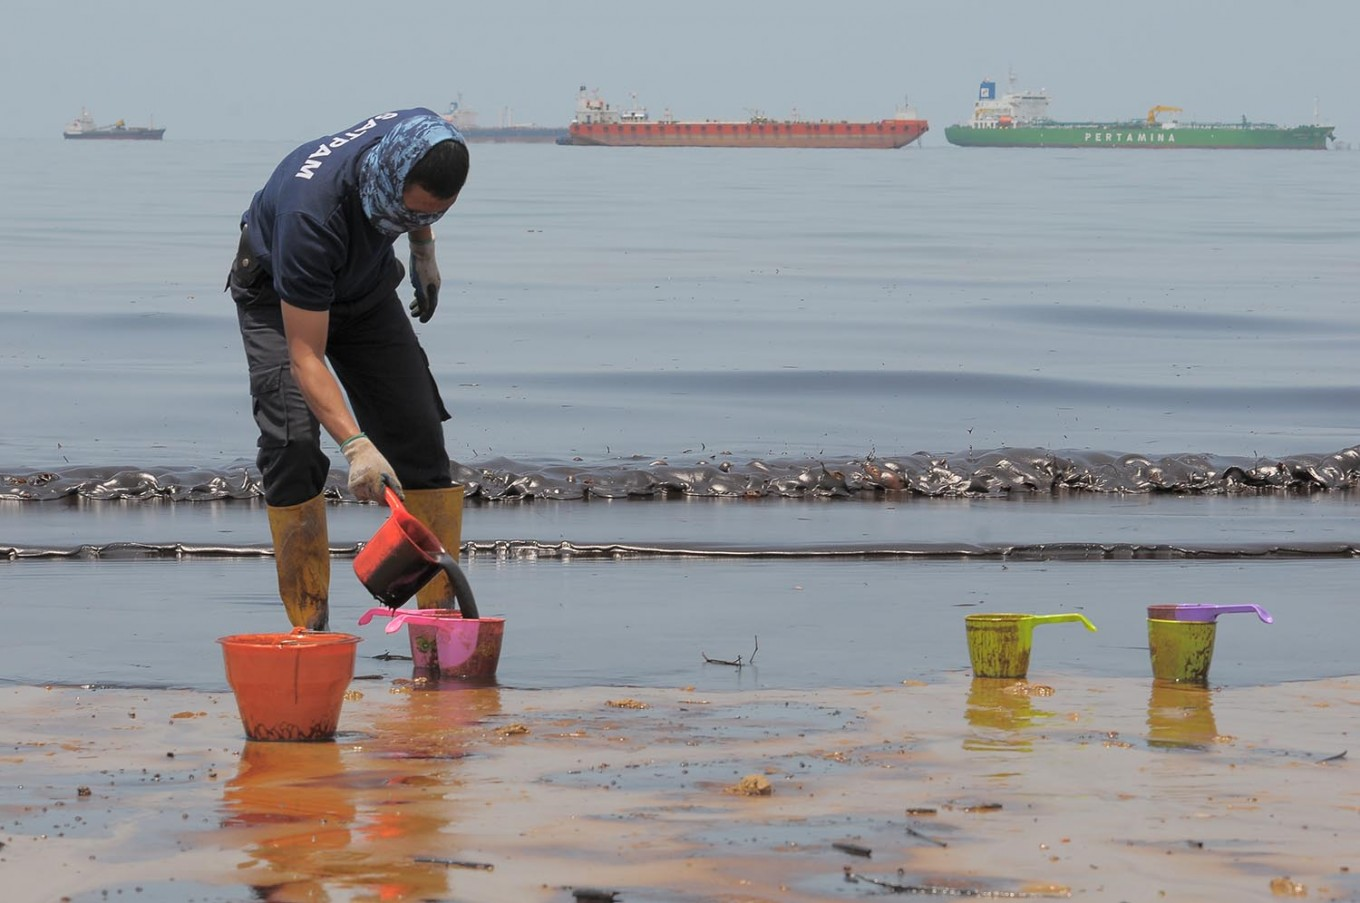 Oil spill incident not Pertamina's fault: Official